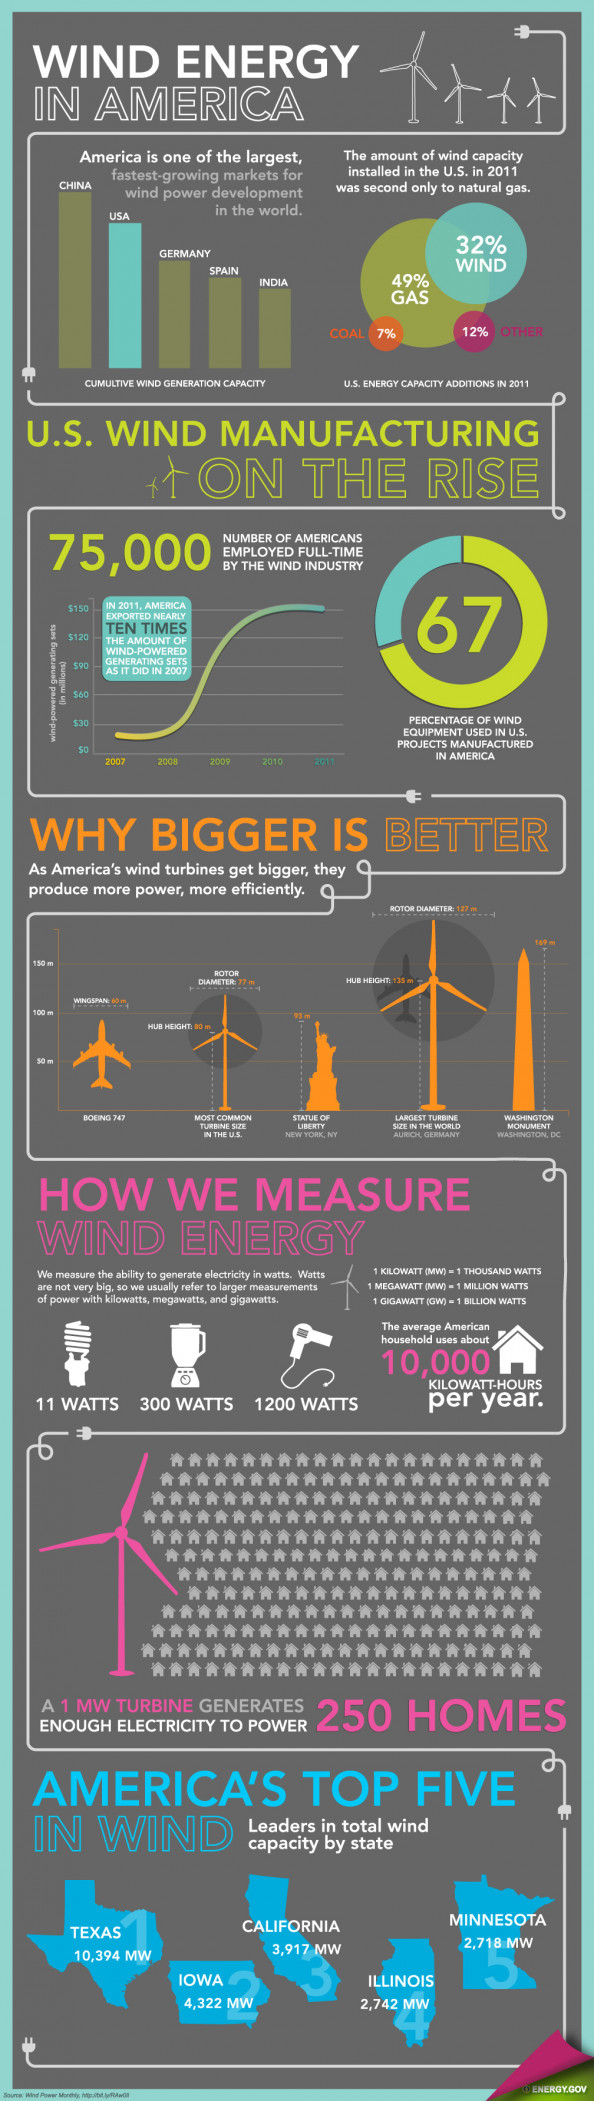 Wind Energy in America Infographic